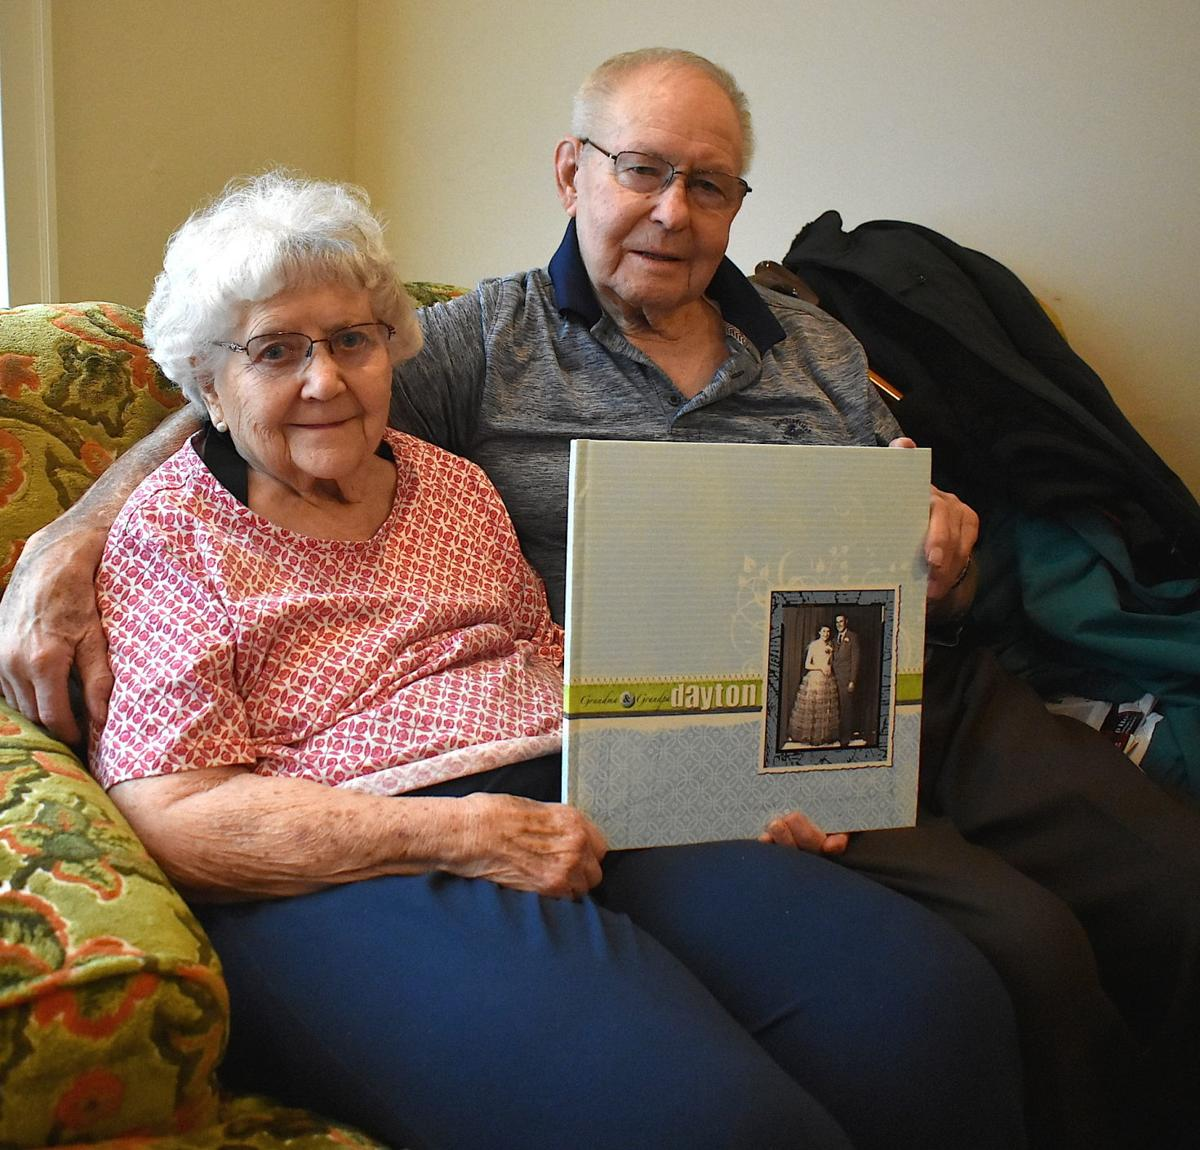 Wilford couple still sweethearts after 67 years